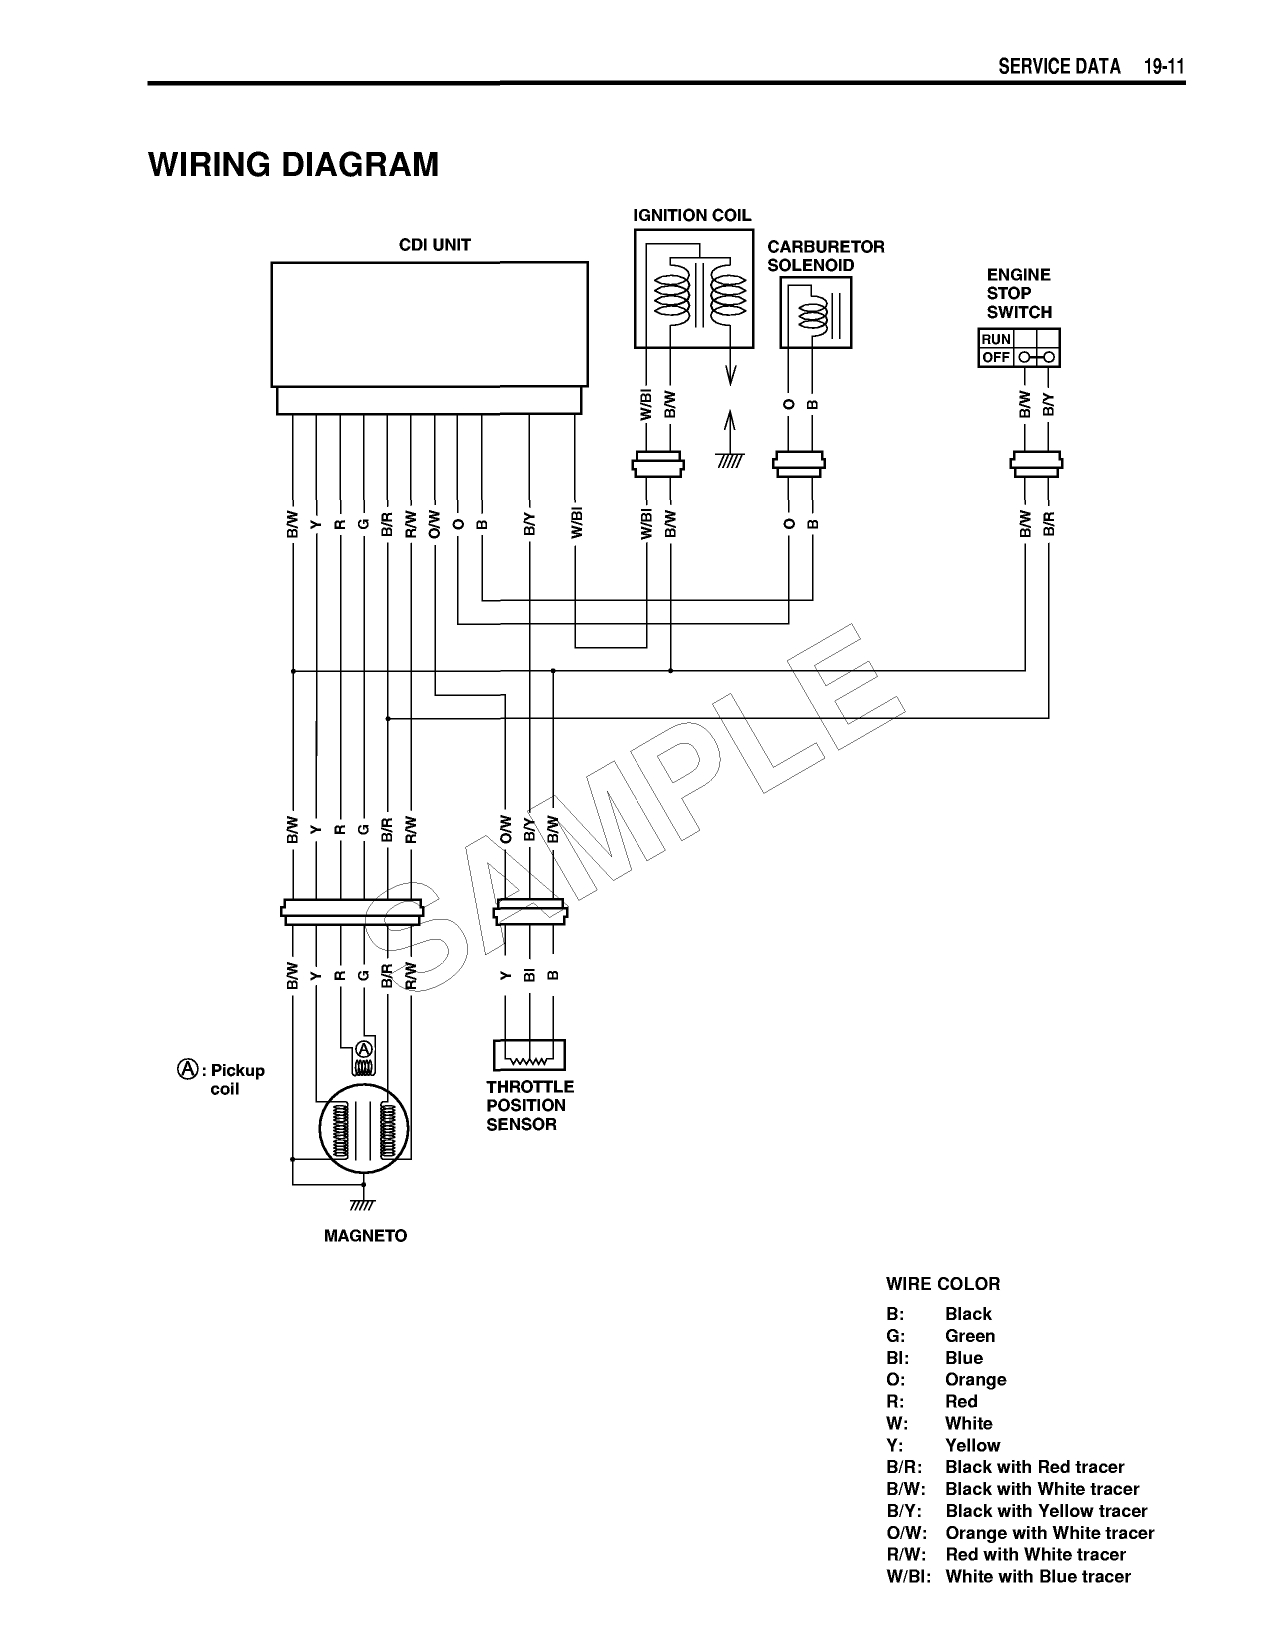 suzuki rmwiring jpg suzuki rm 250 ignition wiring diagram 285k